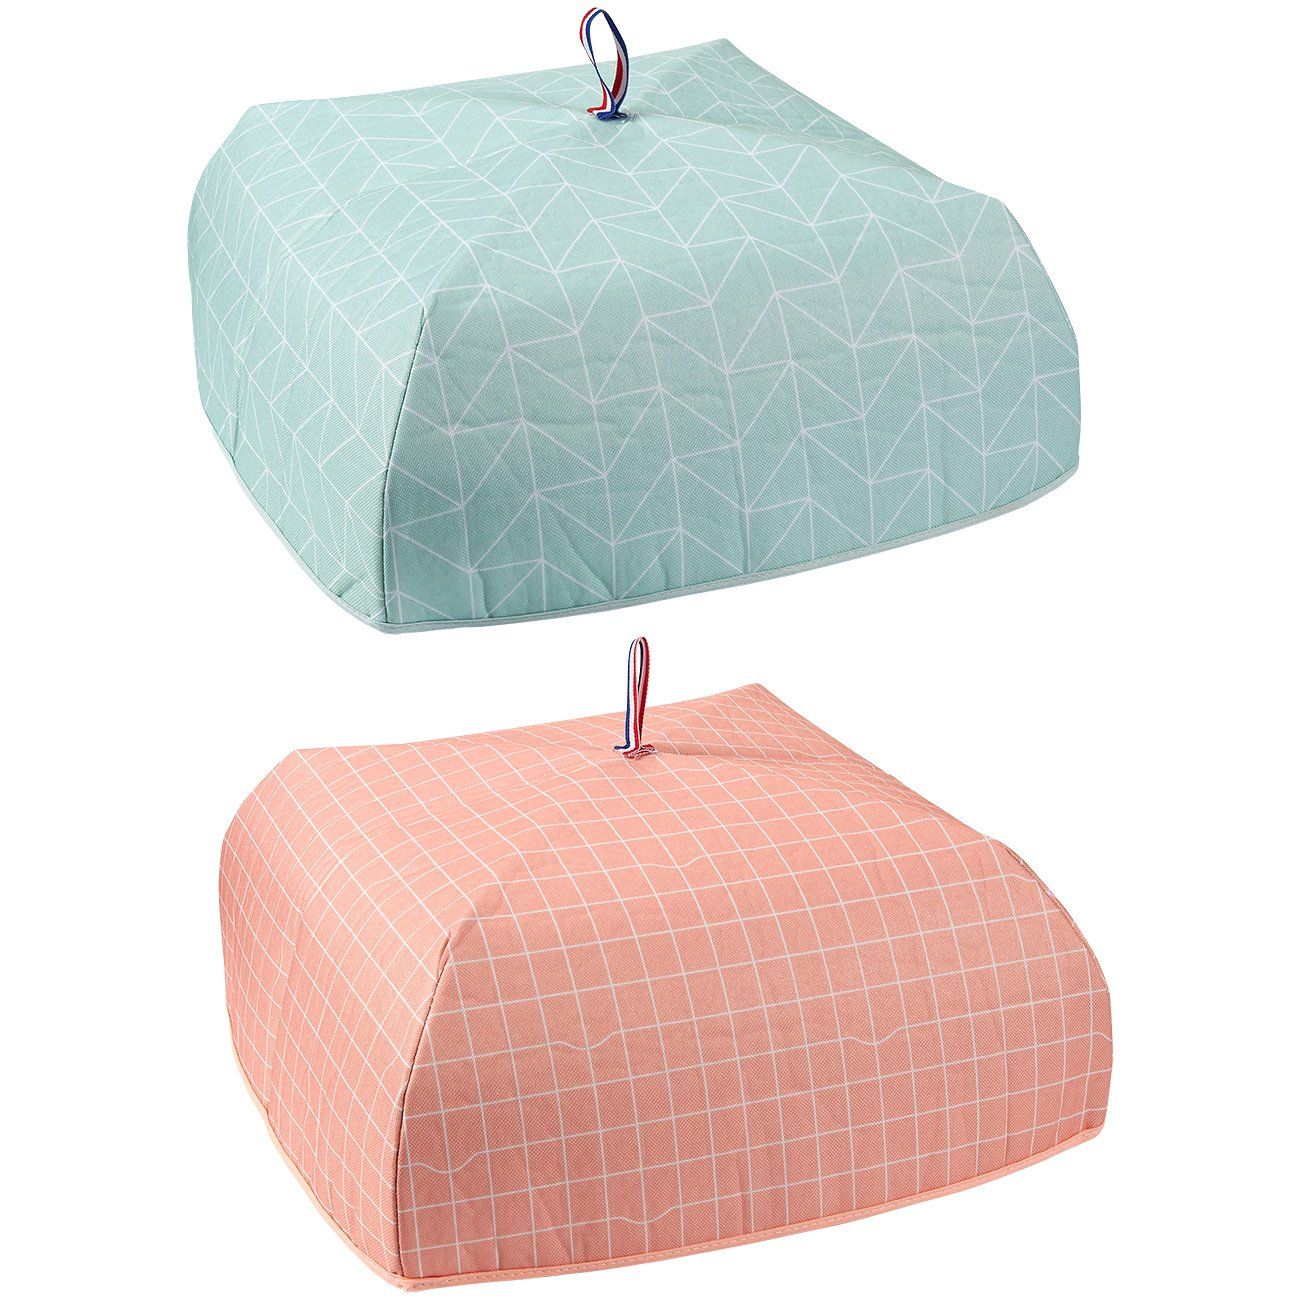 2-Pack Food Cover - Portable Thermal Pop-Up Food Cover, Collapsible Food Tent, Blue, Pink, 15 x 7 x 15 Inches